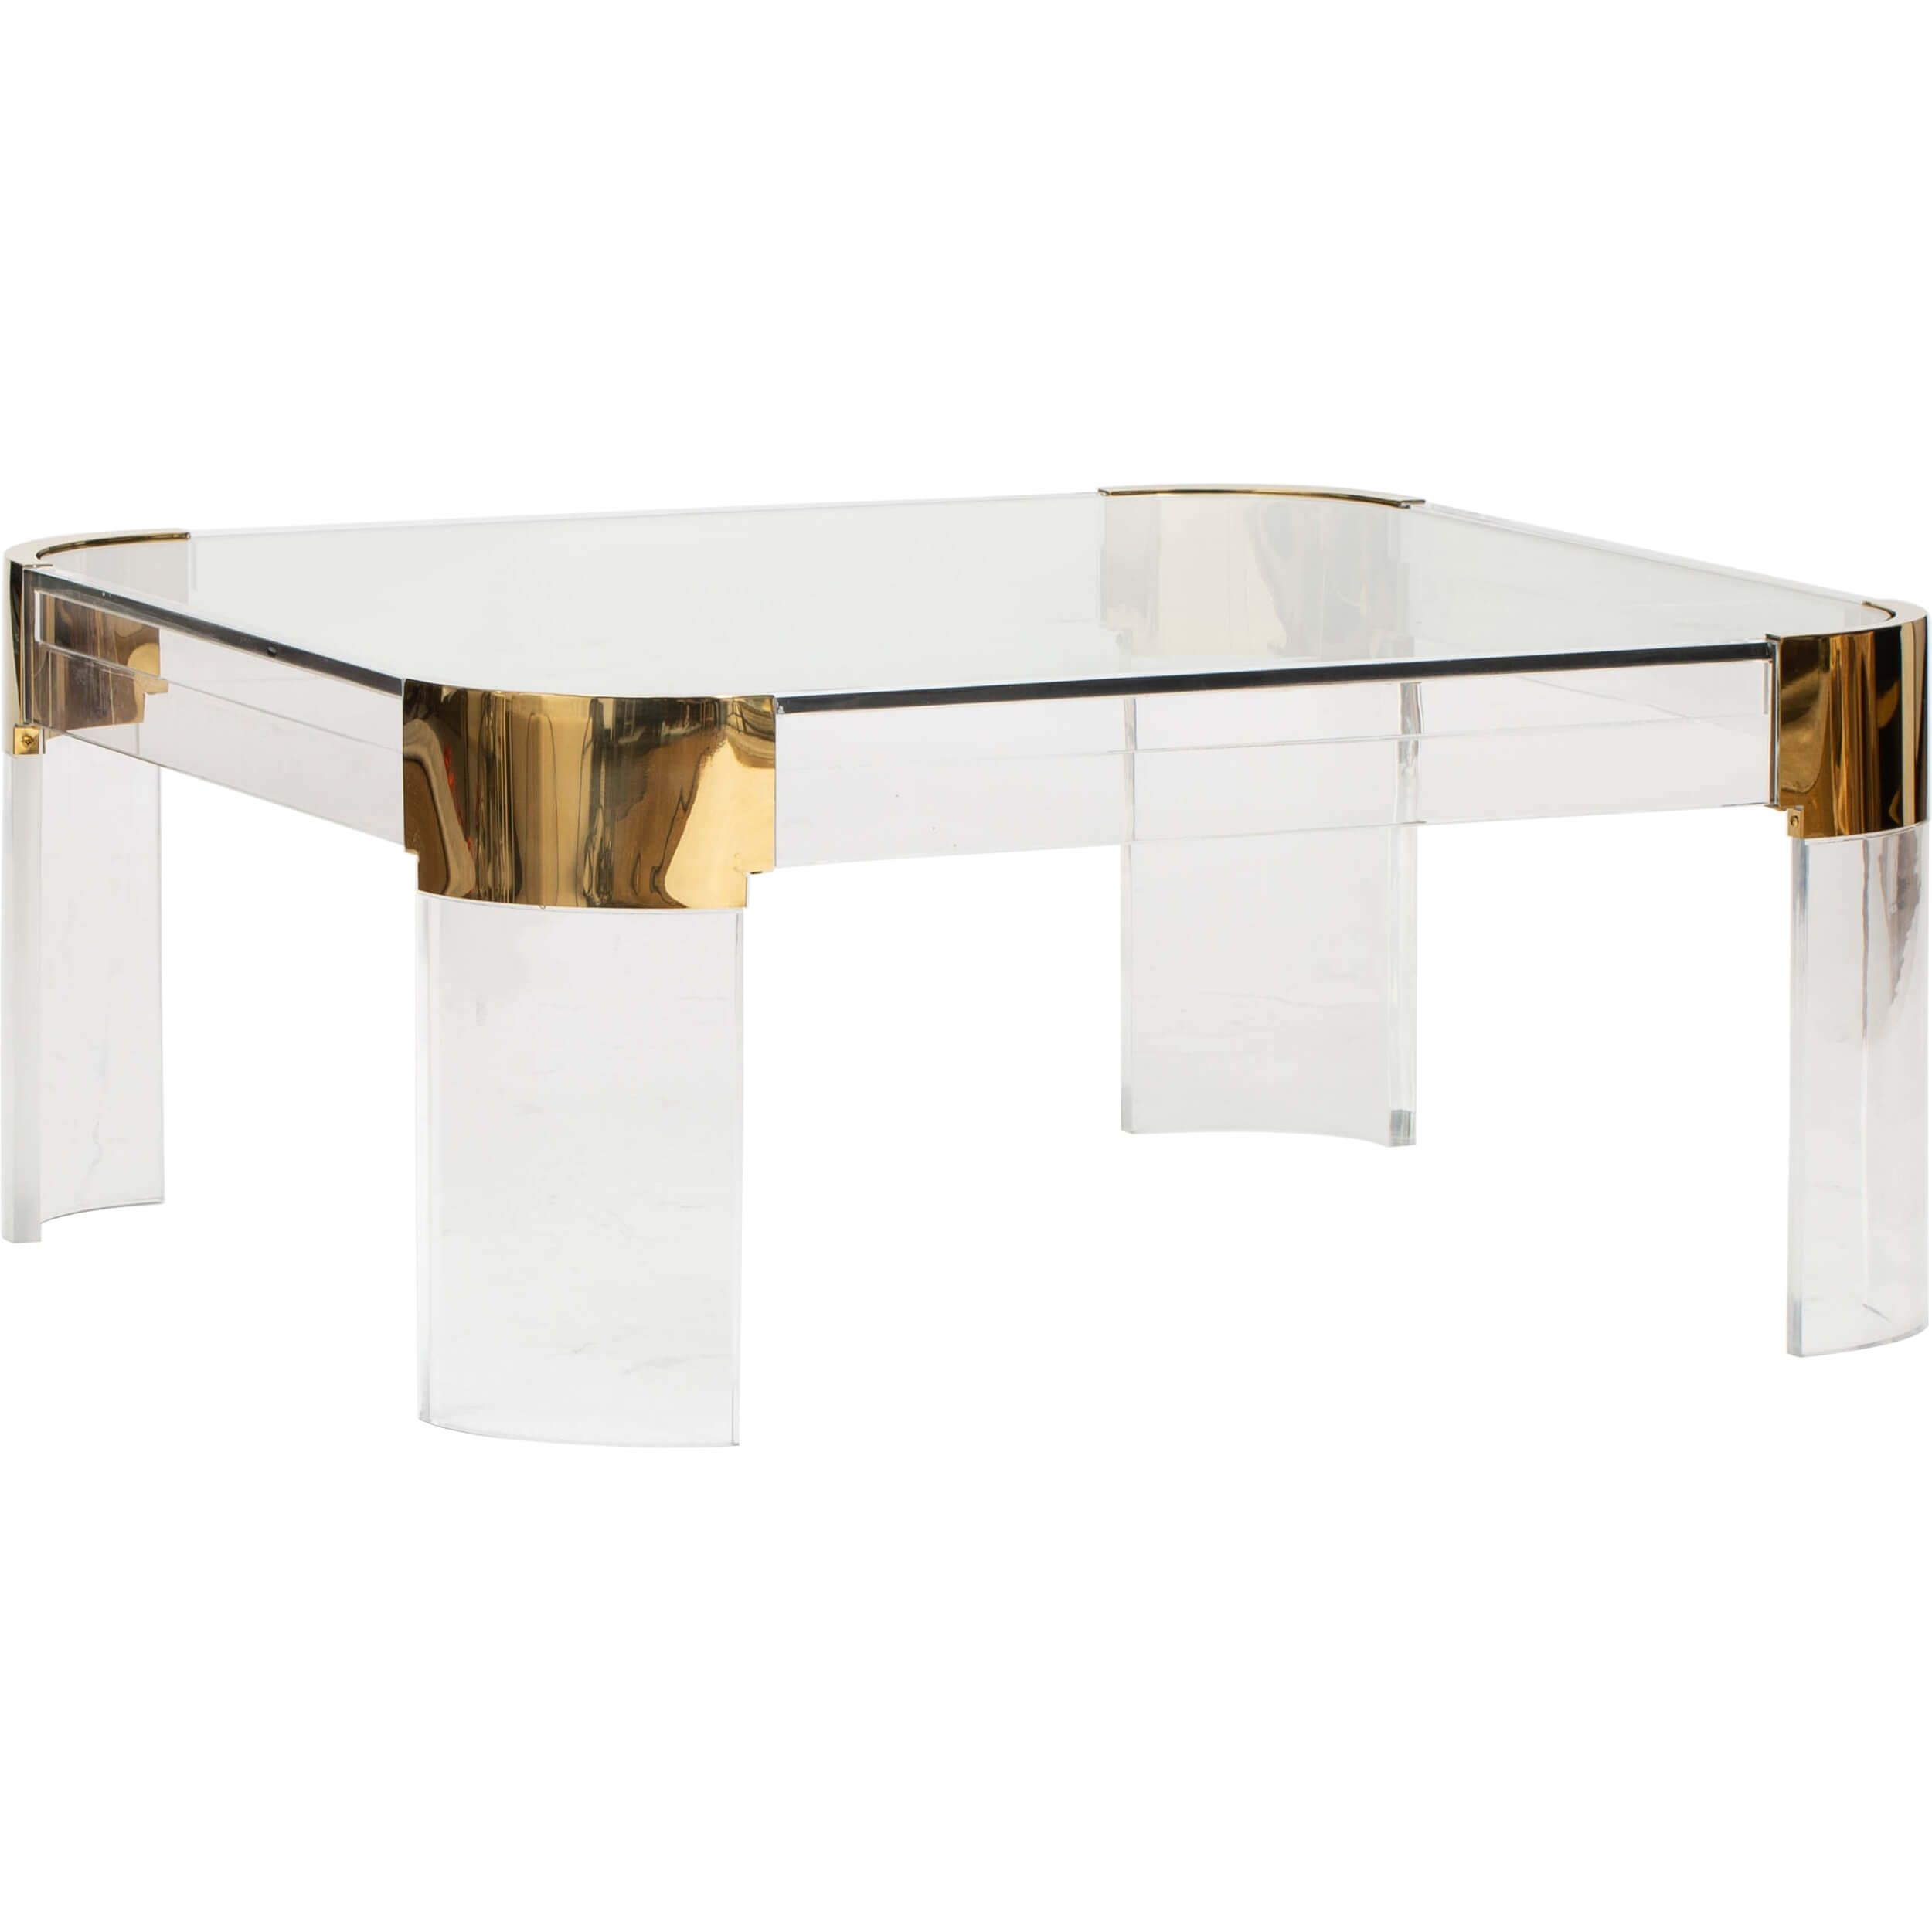 The Castello Acrylic Cocktail Table Is A Beauti Cocktail Tables Table Dining Table [ 2500 x 2500 Pixel ]